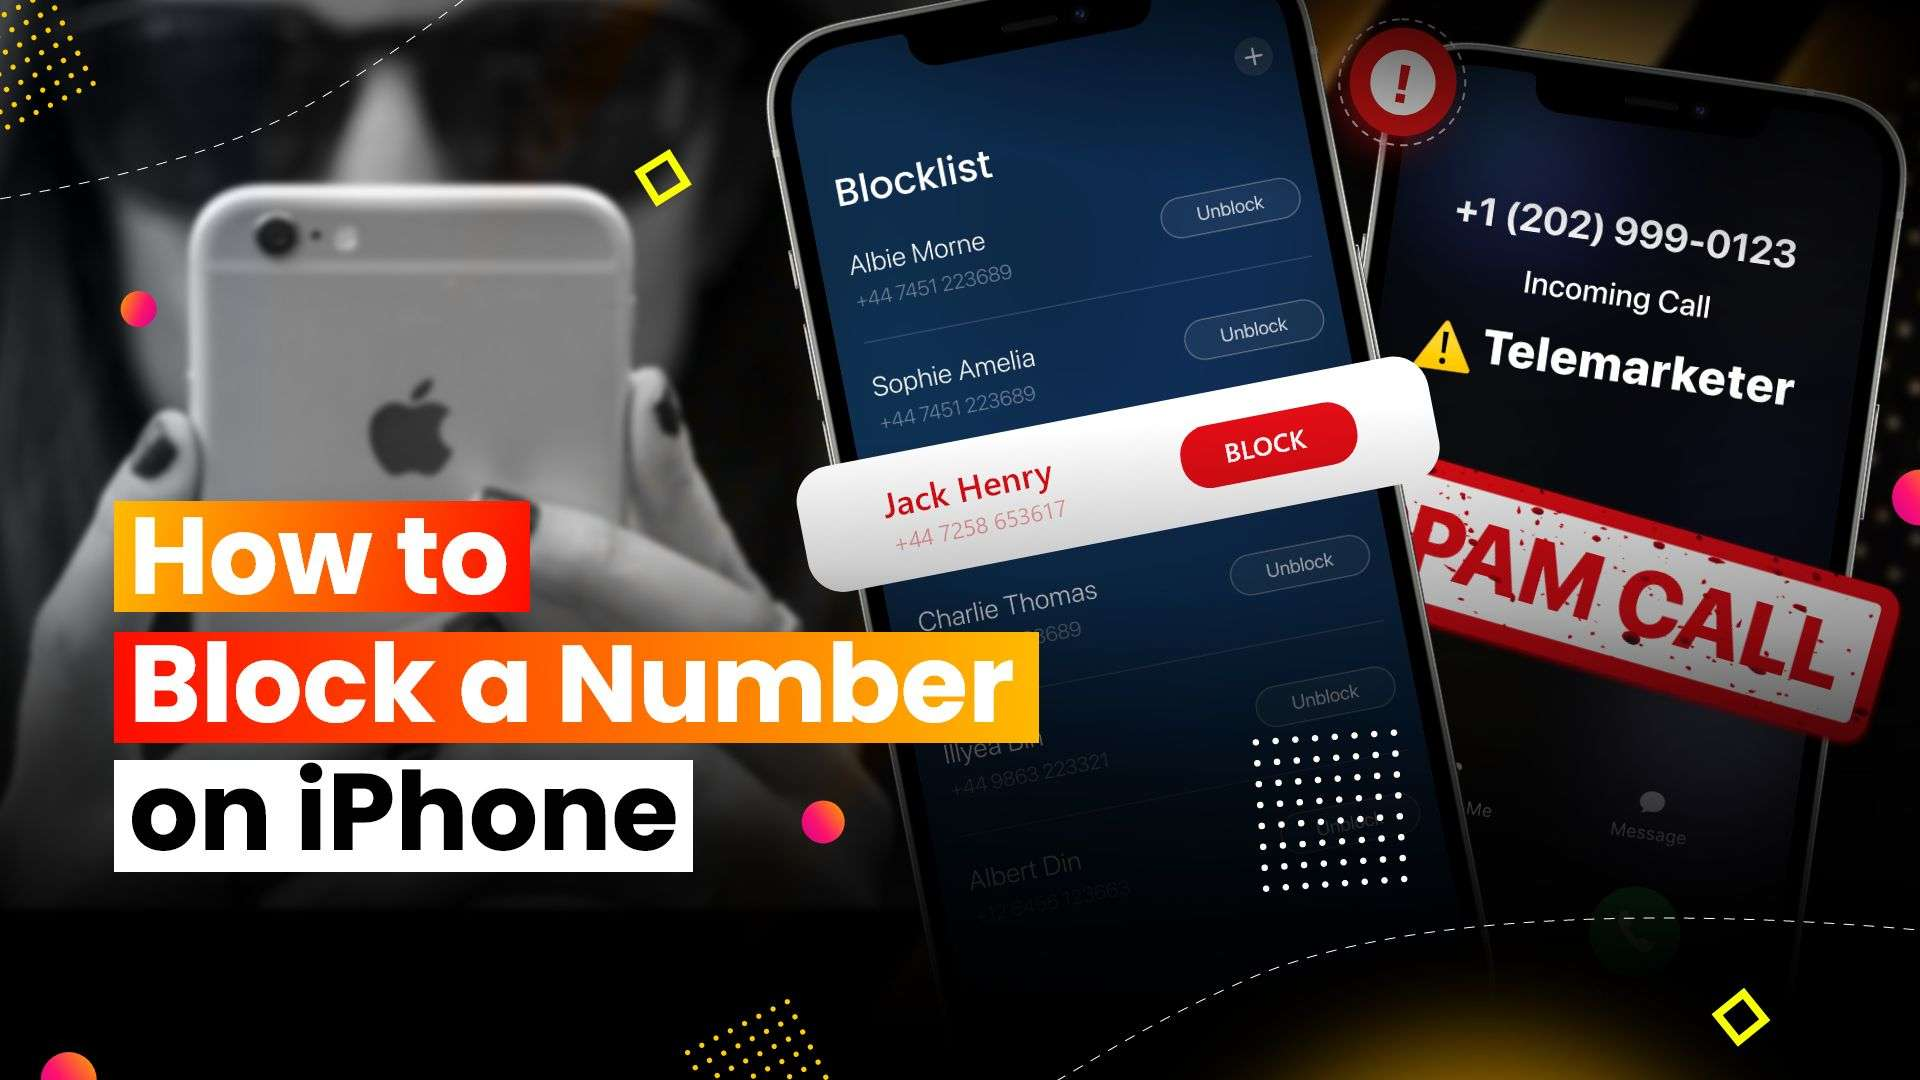 How to Block a Number on iPhone